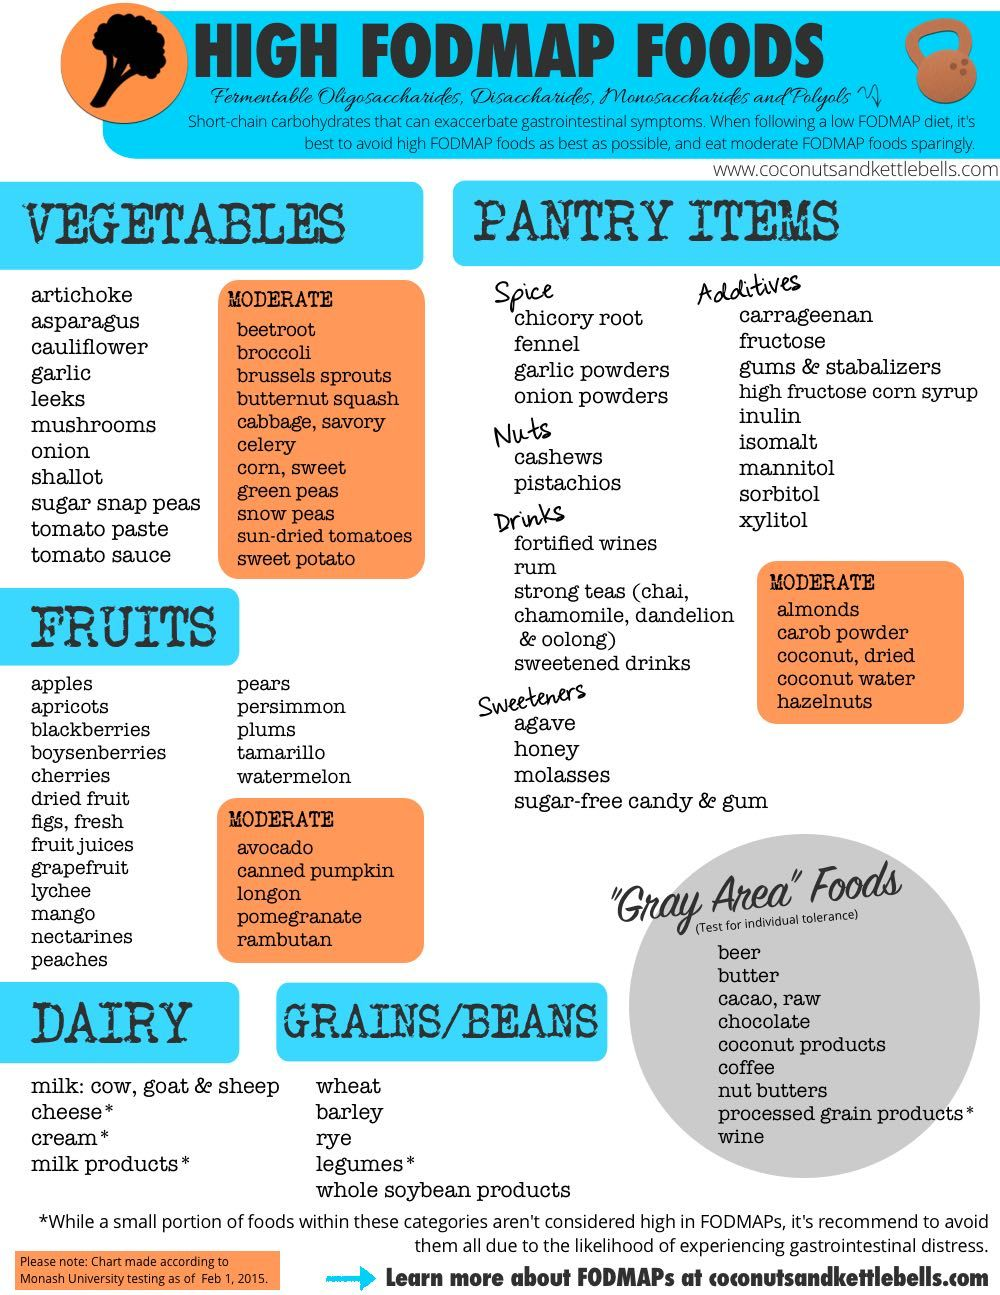 Food Low In Fermentable Carbohydrates